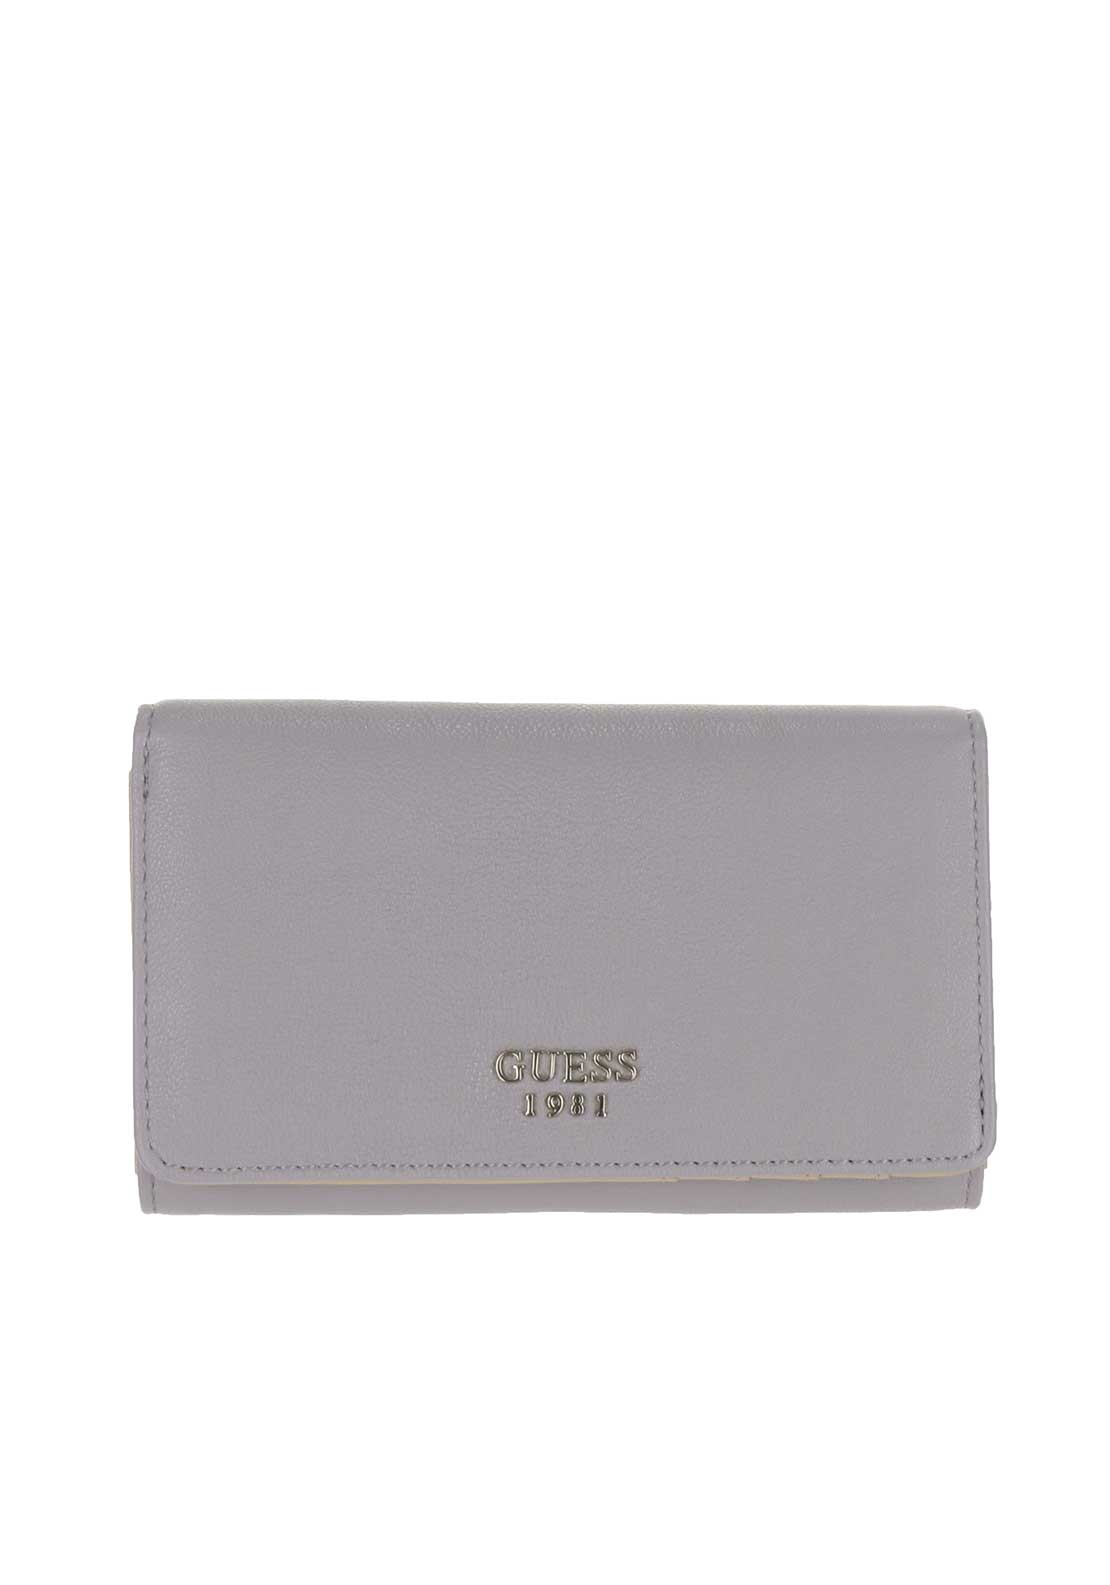 Guess Cate Fold Over Wallet, Grey